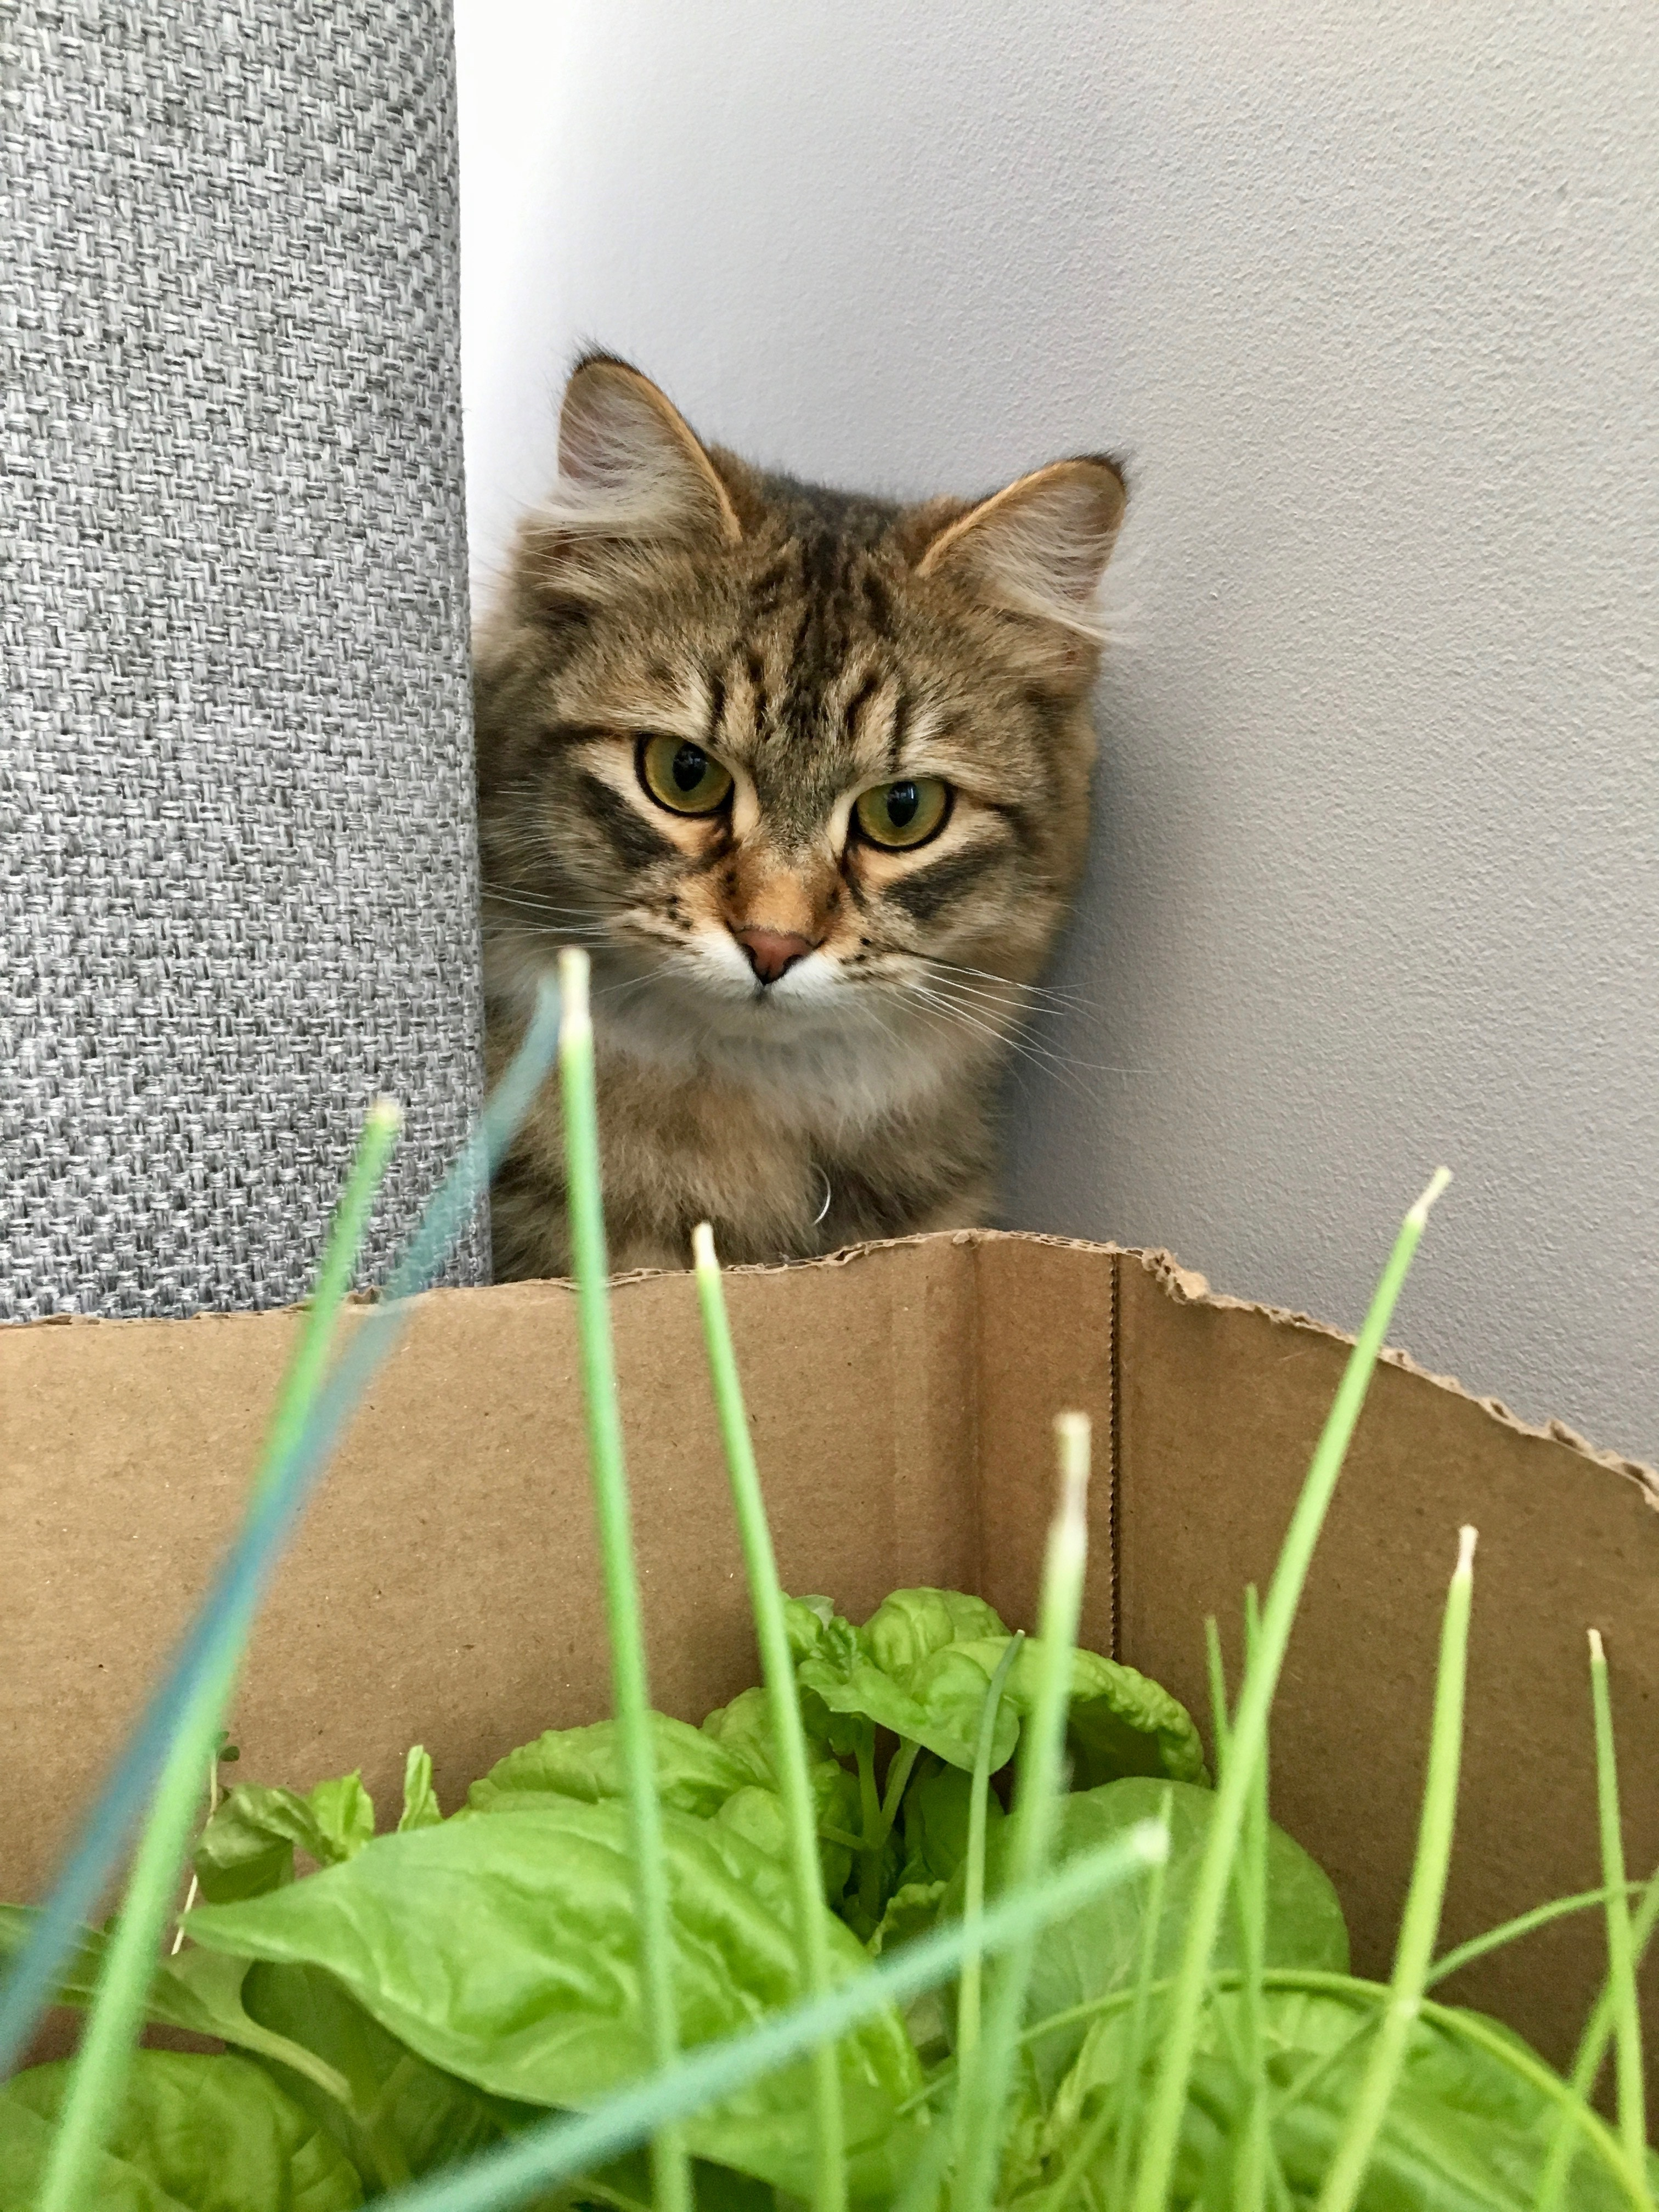 which plants are safe for pets